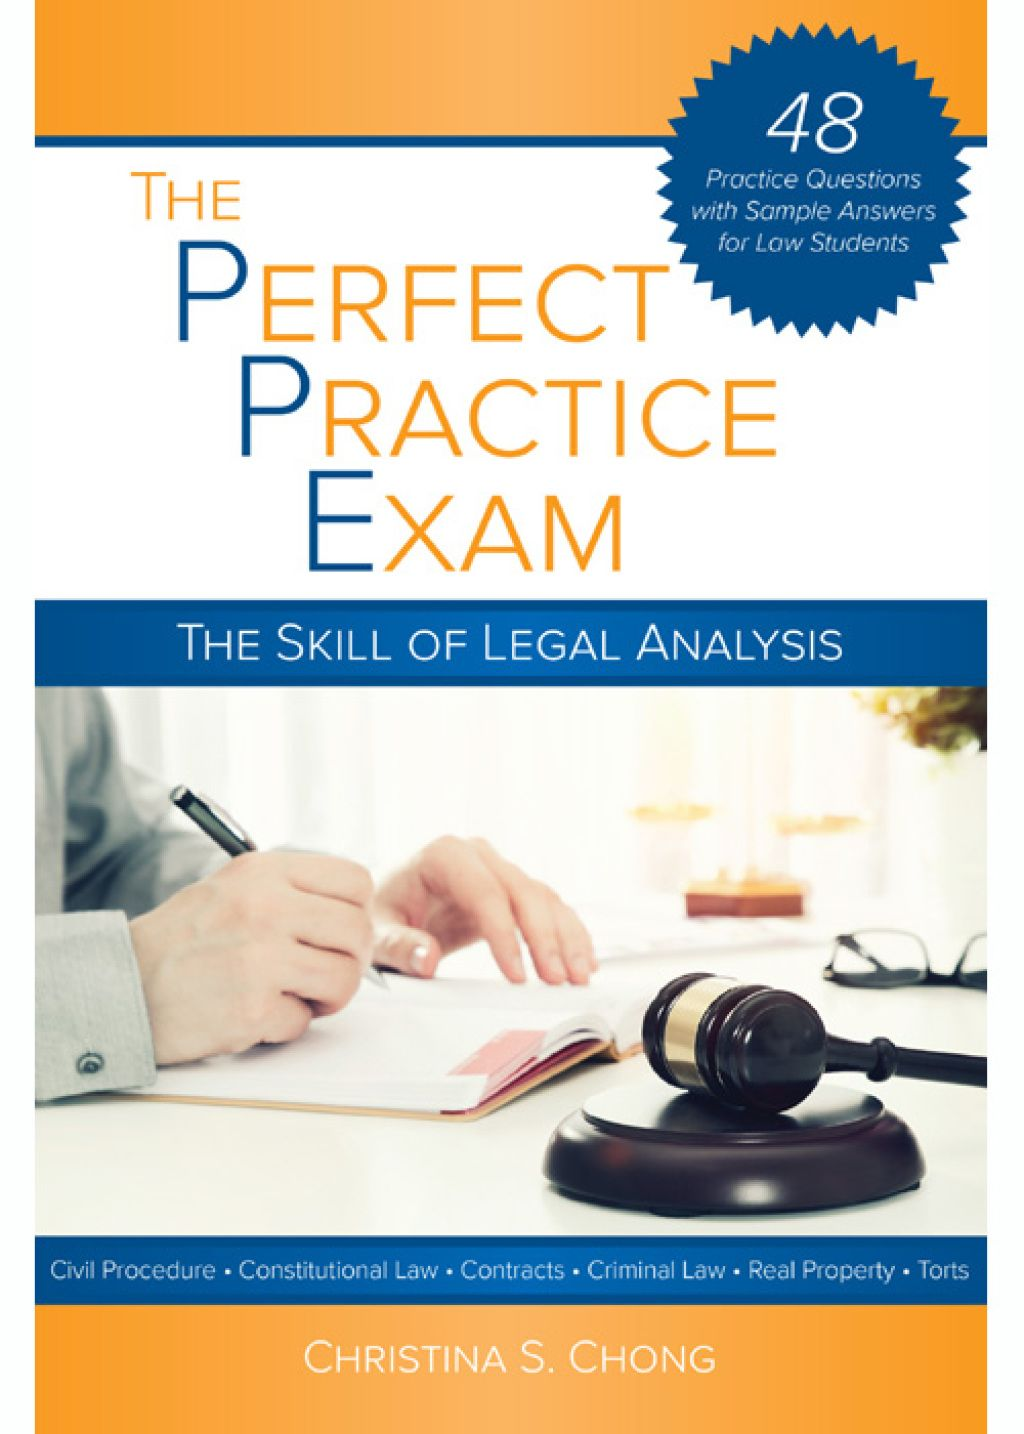 The Perfect Practice Exam The Skill of Legal Analysis